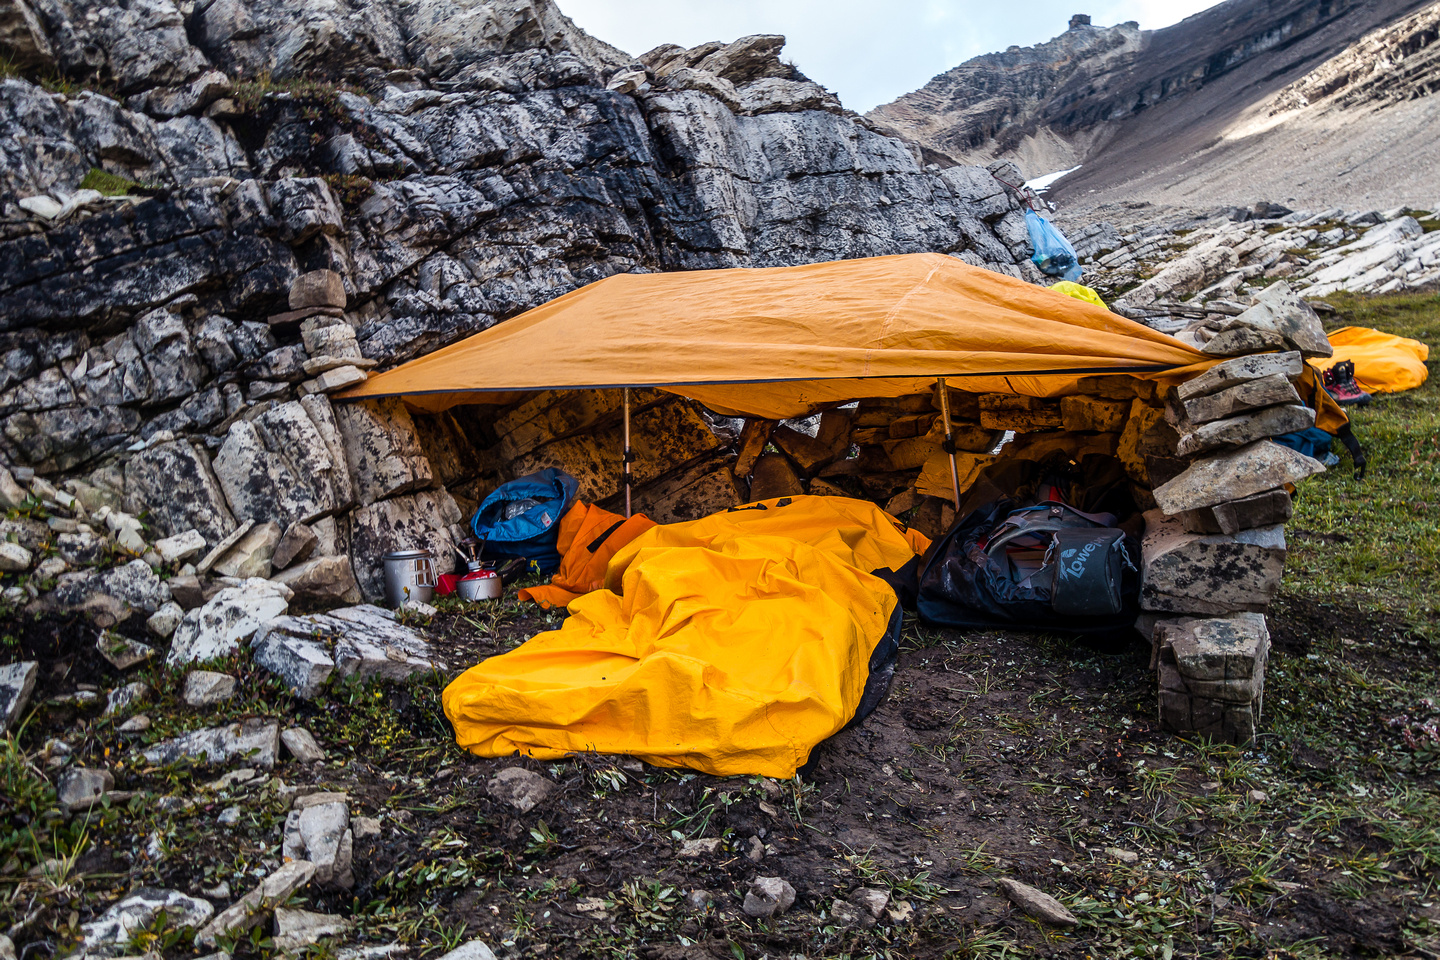 My setup for the bivy. Kept me dry through a LOT of rain! Rocks and trekking poles are critical to making this shelter work.